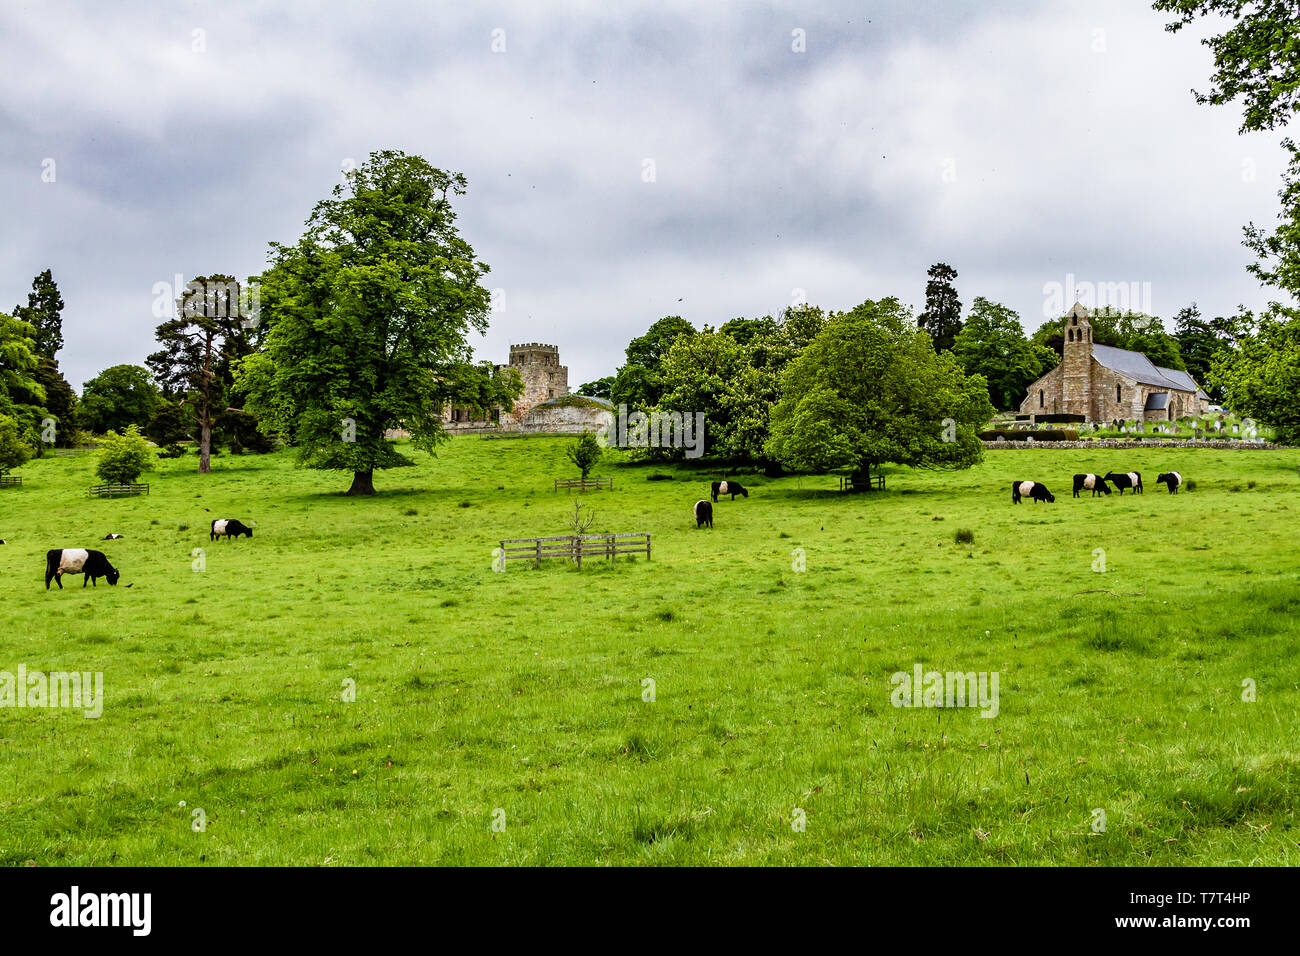 Ford Castle and church of St Michael and All Angels, with Belted Galloway cattle in the foreground. Village of Ford, Northumberland, UK. May 2018. Stock Photo